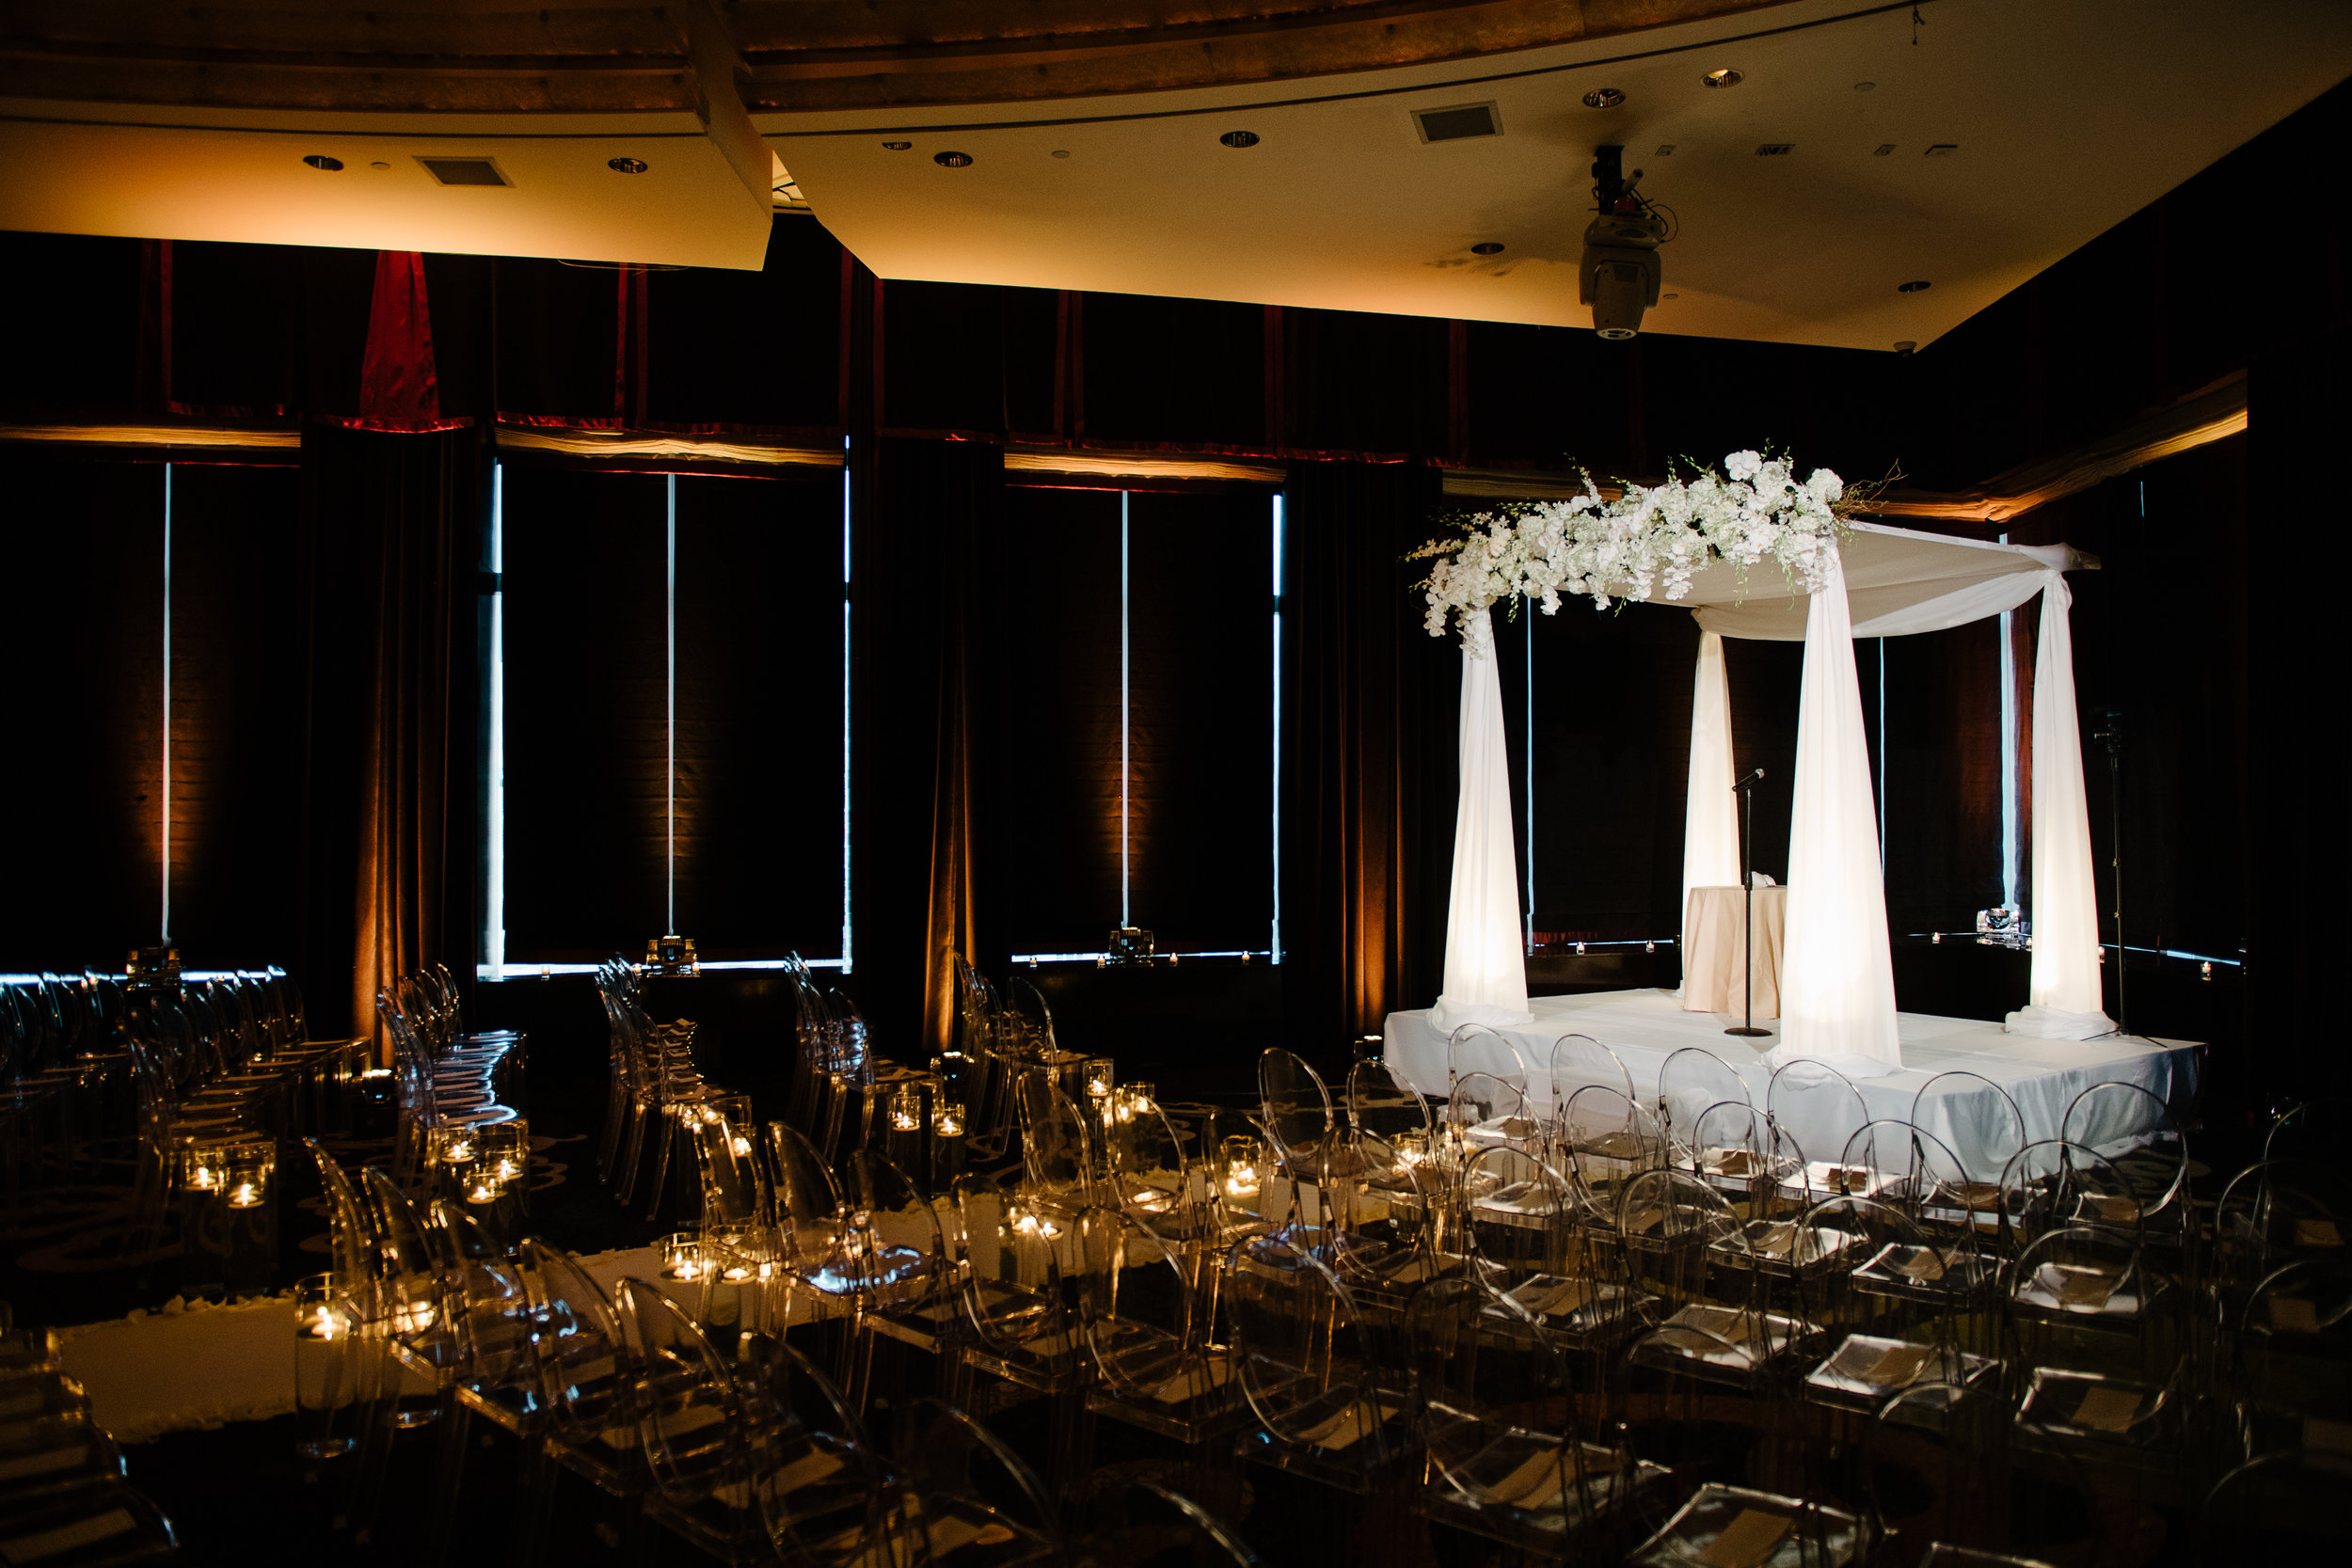 New-York-Wedding-Mandarin-Oriental-Andrea-Freeman-Events-10.jpg